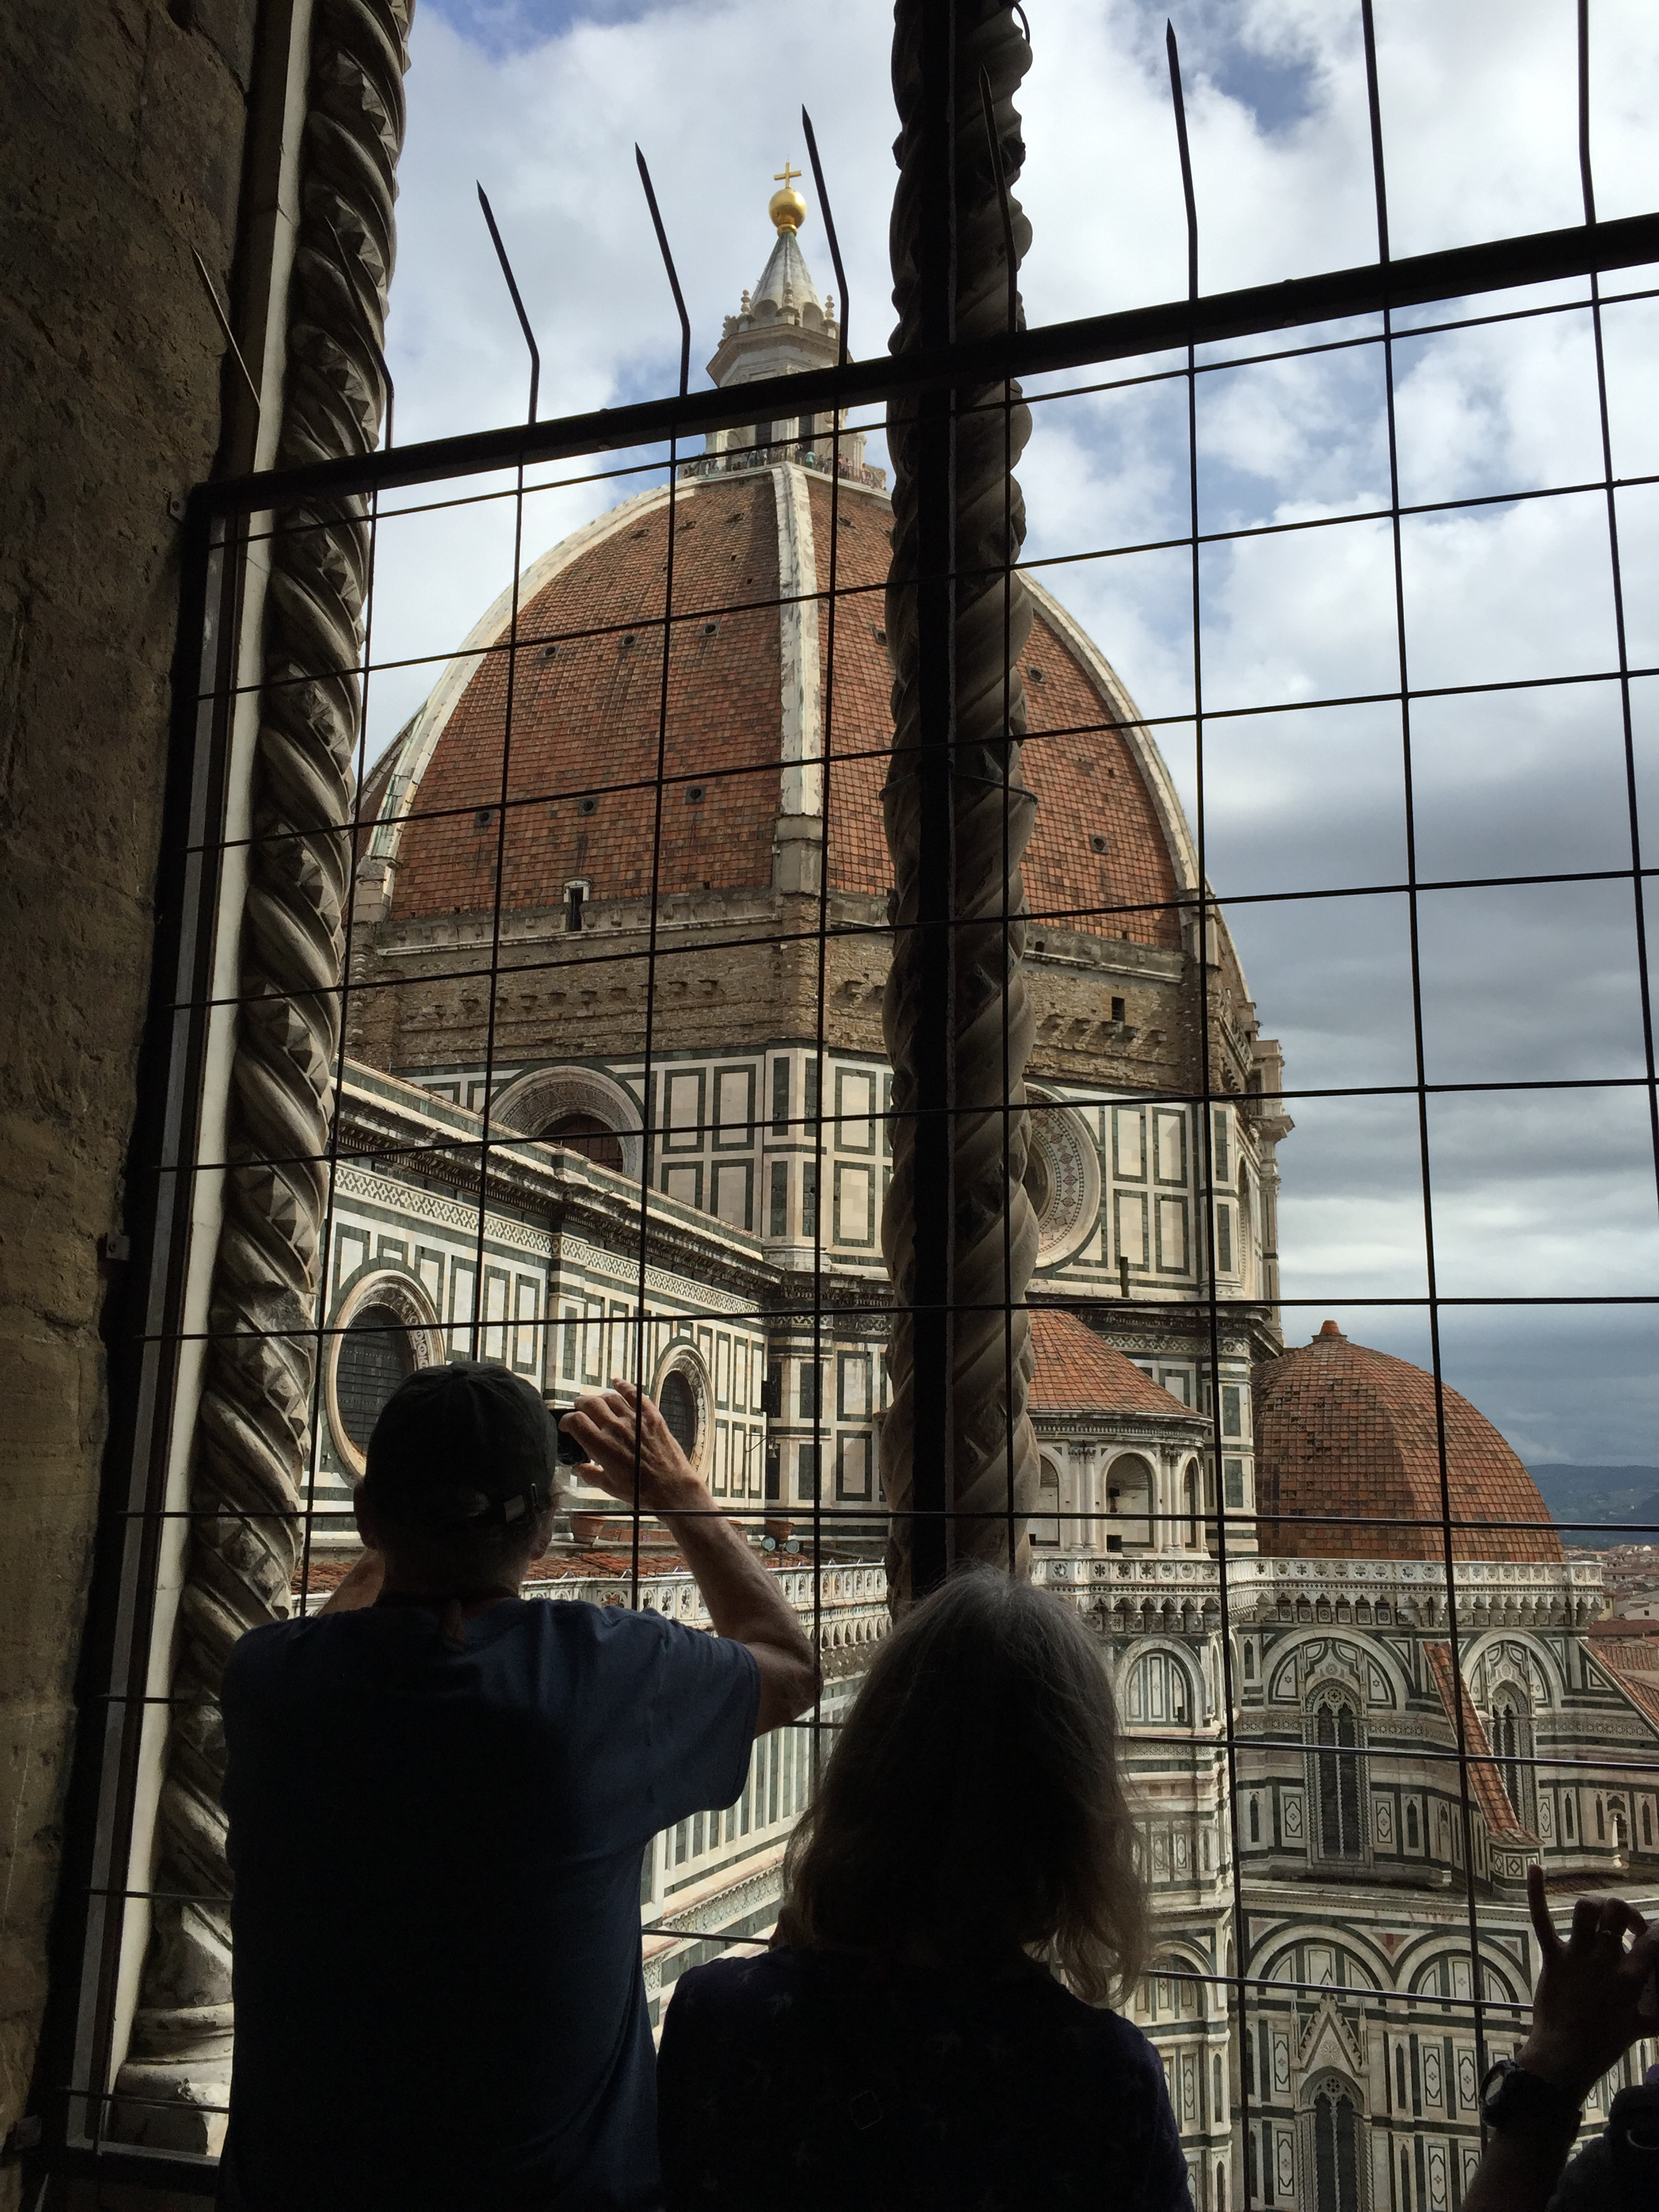 A view of the cathedral of Santa Maria del Fiore from halfway up Giotto's bell tower